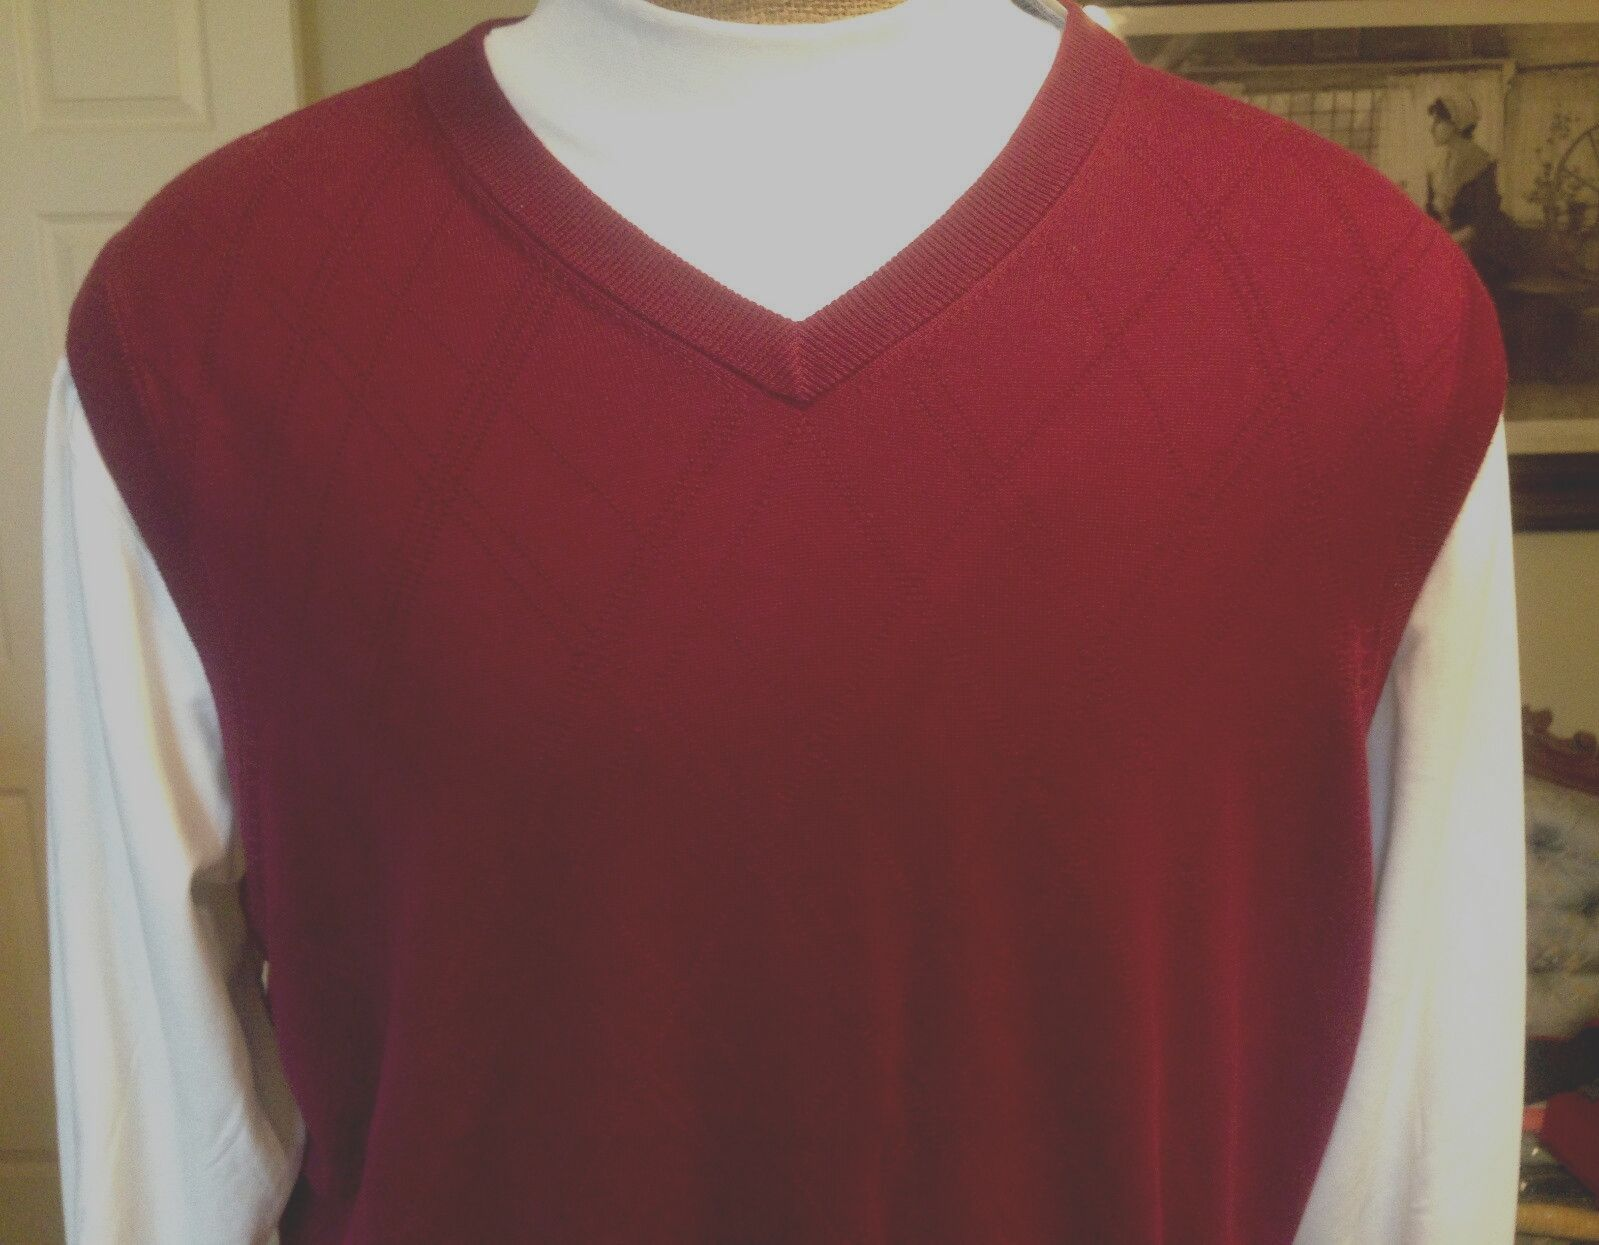 ROUNDTREE & YORKE Merlot Red Cotton Mens Sweater Vest XLT  2X   F945 Box 77